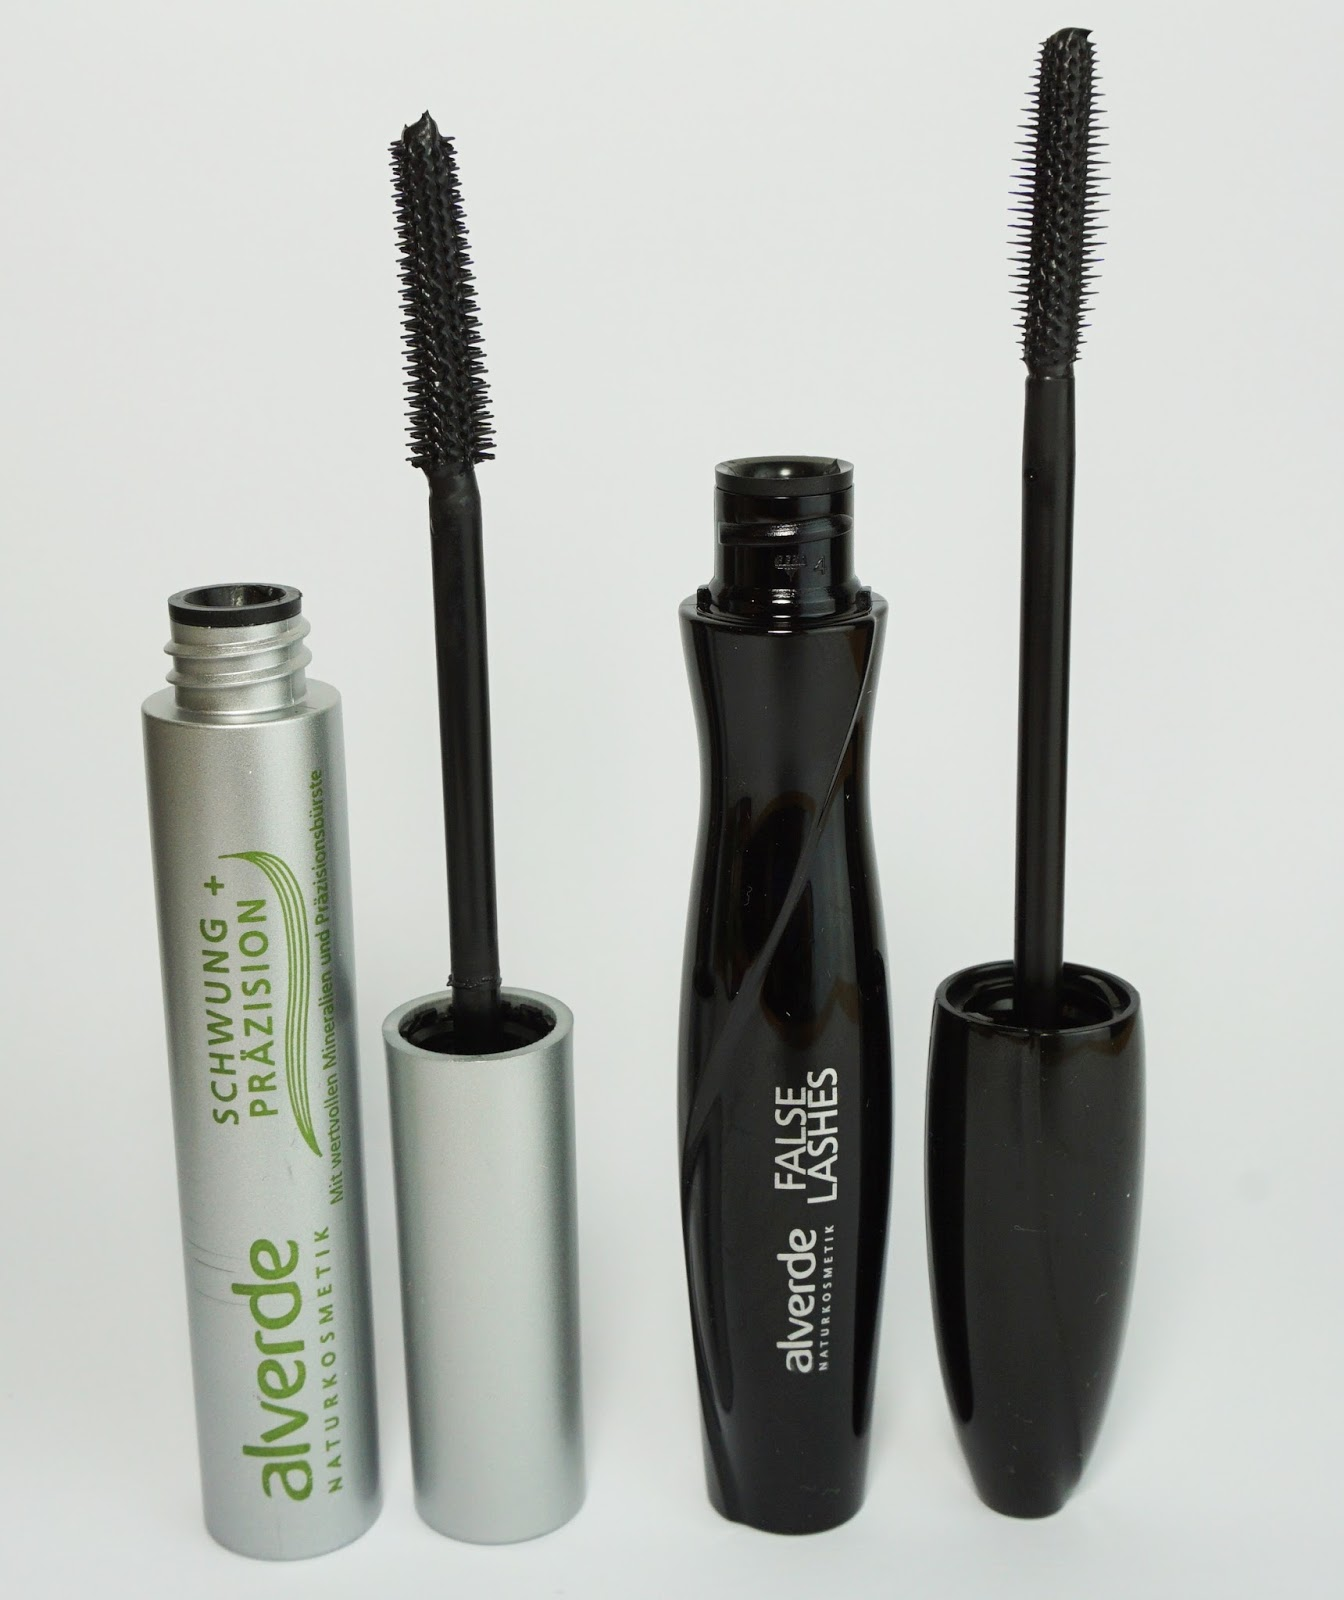 Alverde - Mascara Schwung + Präzision & False Lashes